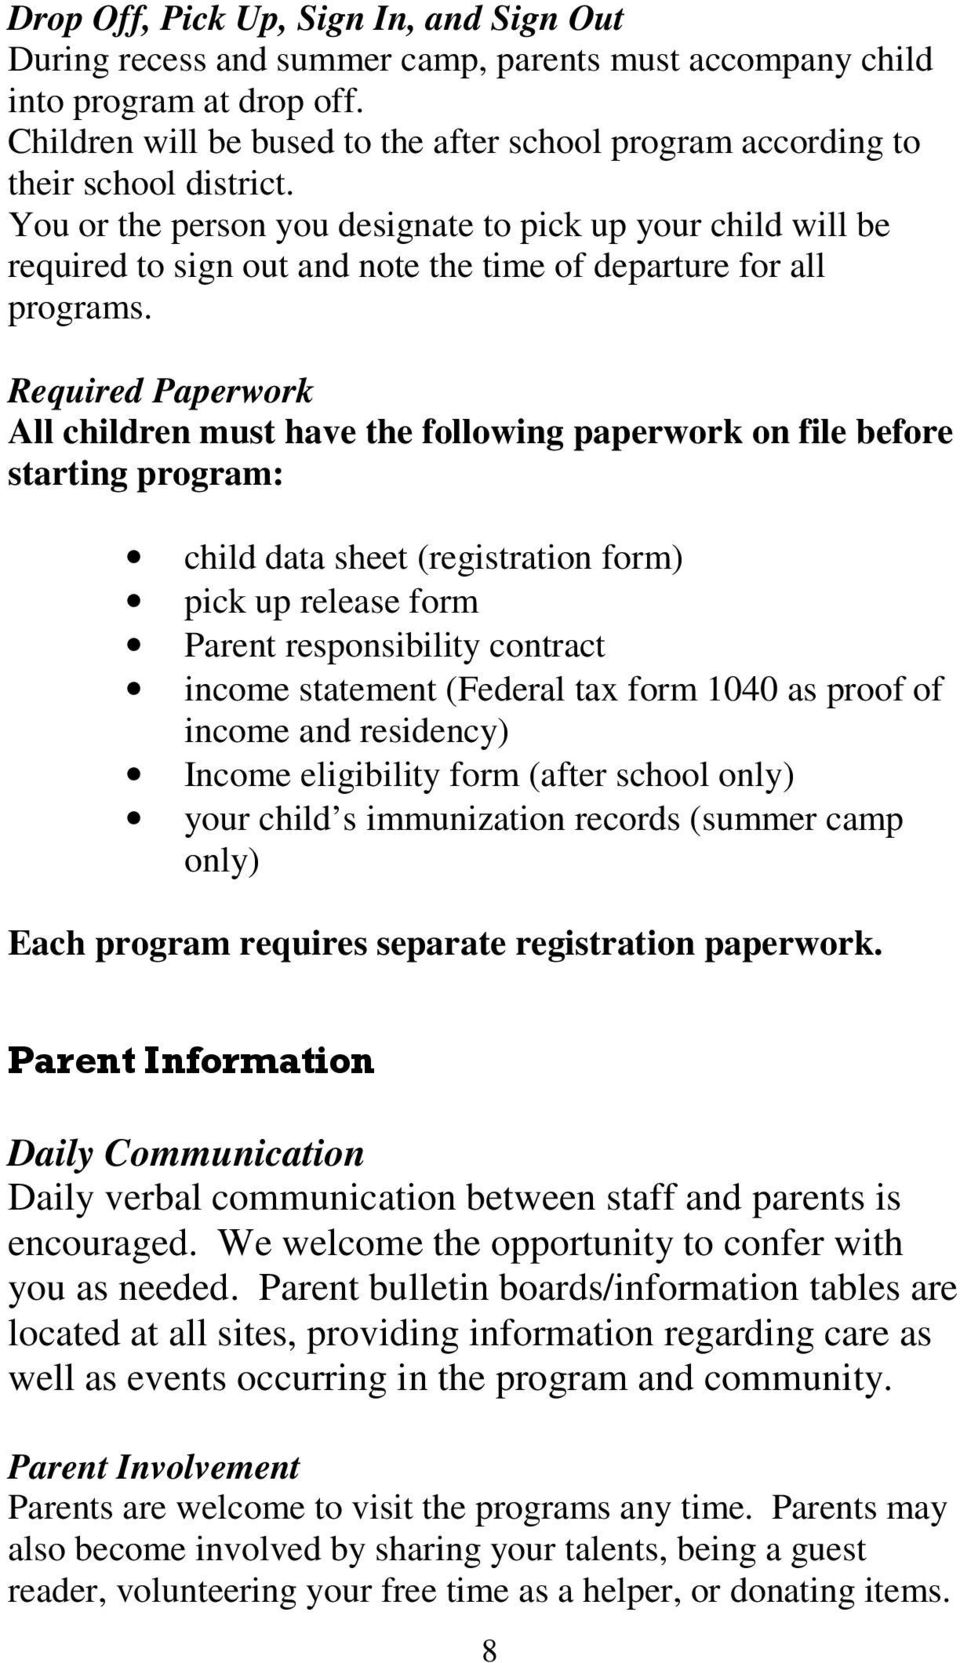 You or the person you designate to pick up your child will be required to sign out and note the time of departure for all programs.